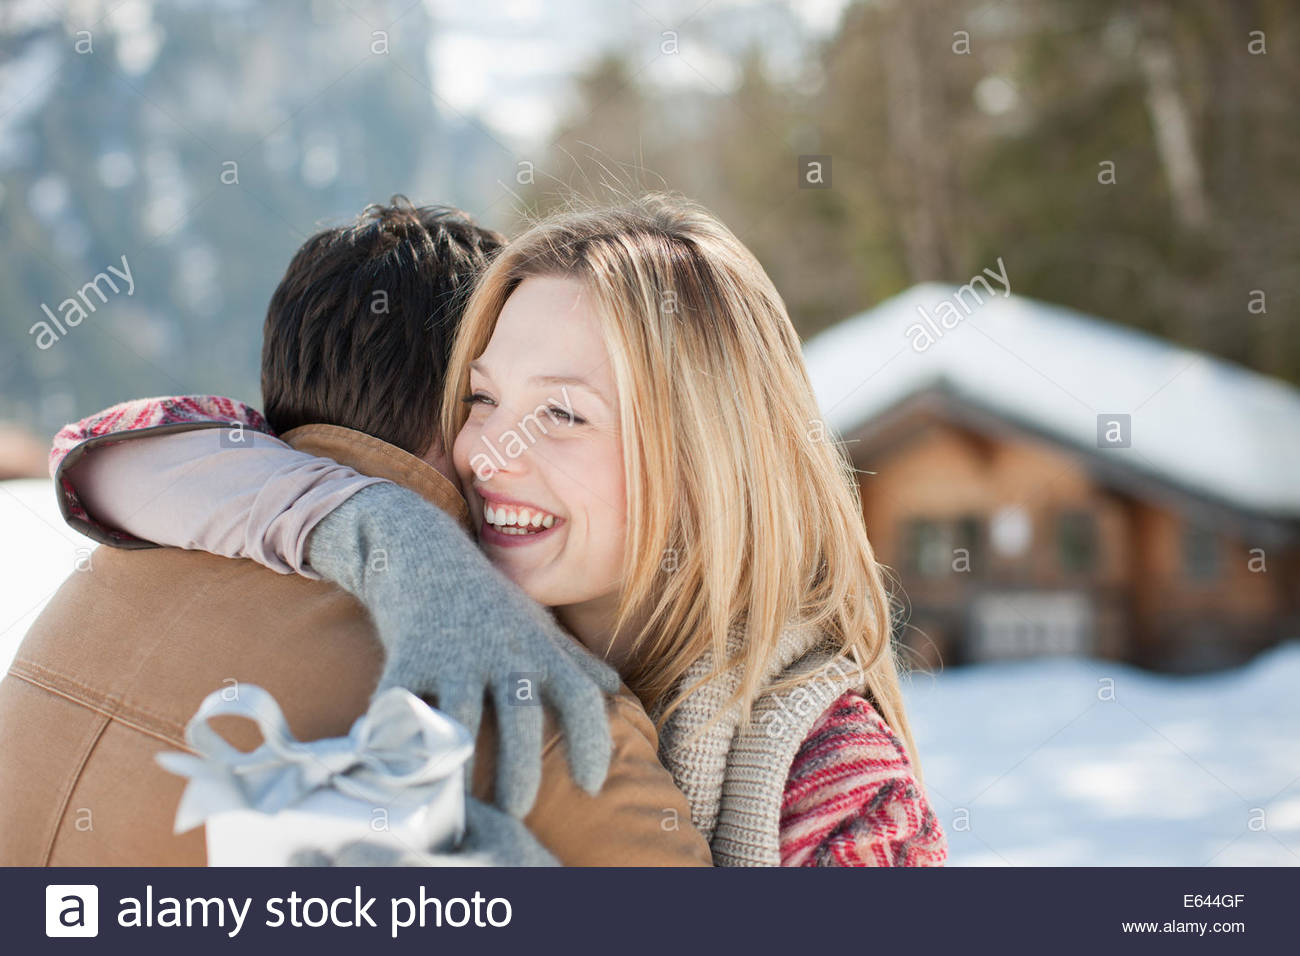 Smiling woman holding Christmas gift and hugging man in snowy field - Stock Image